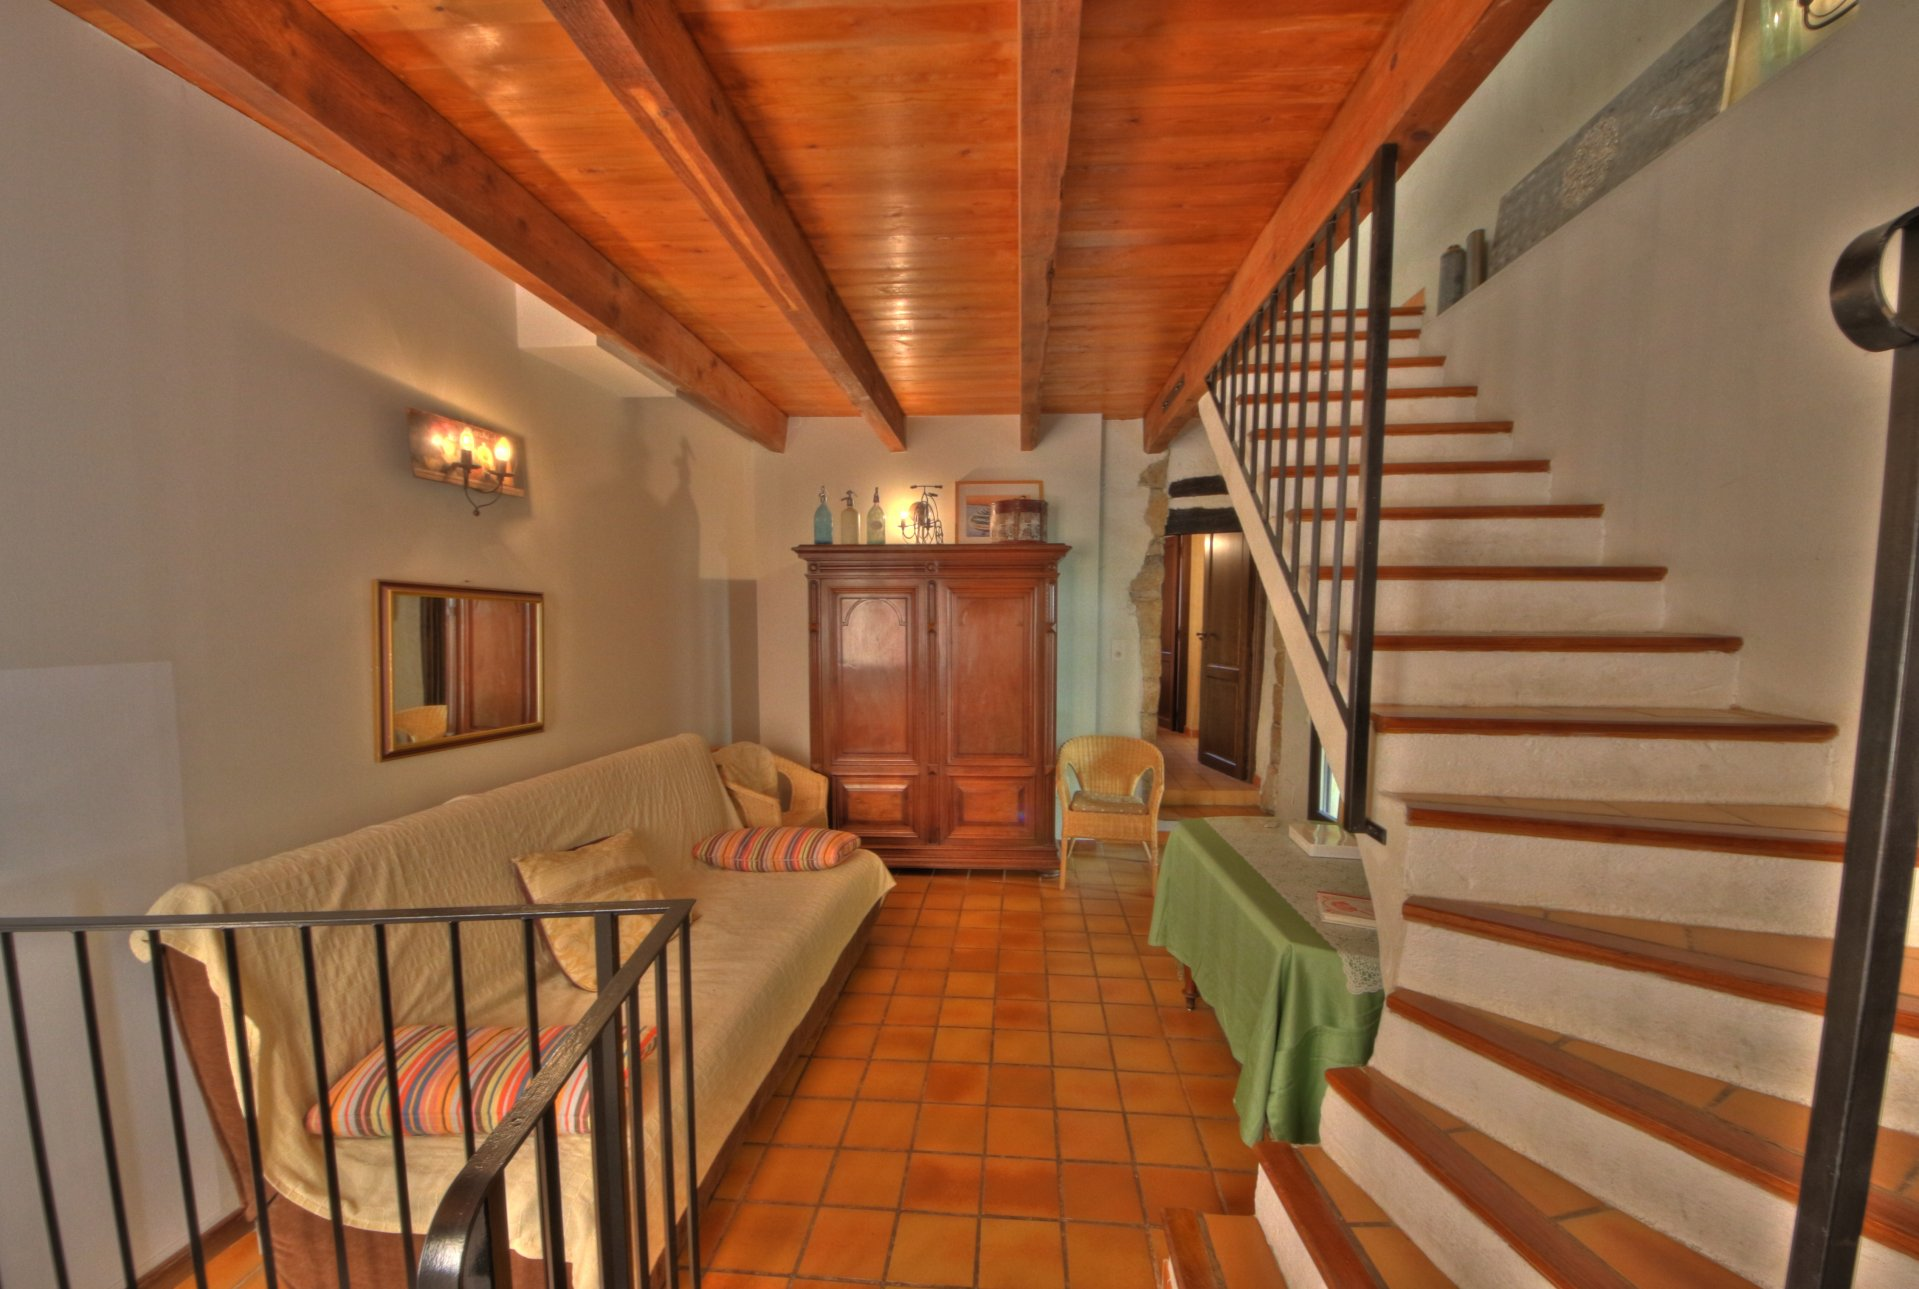 Spacious entrance with access to the vaulted cellar